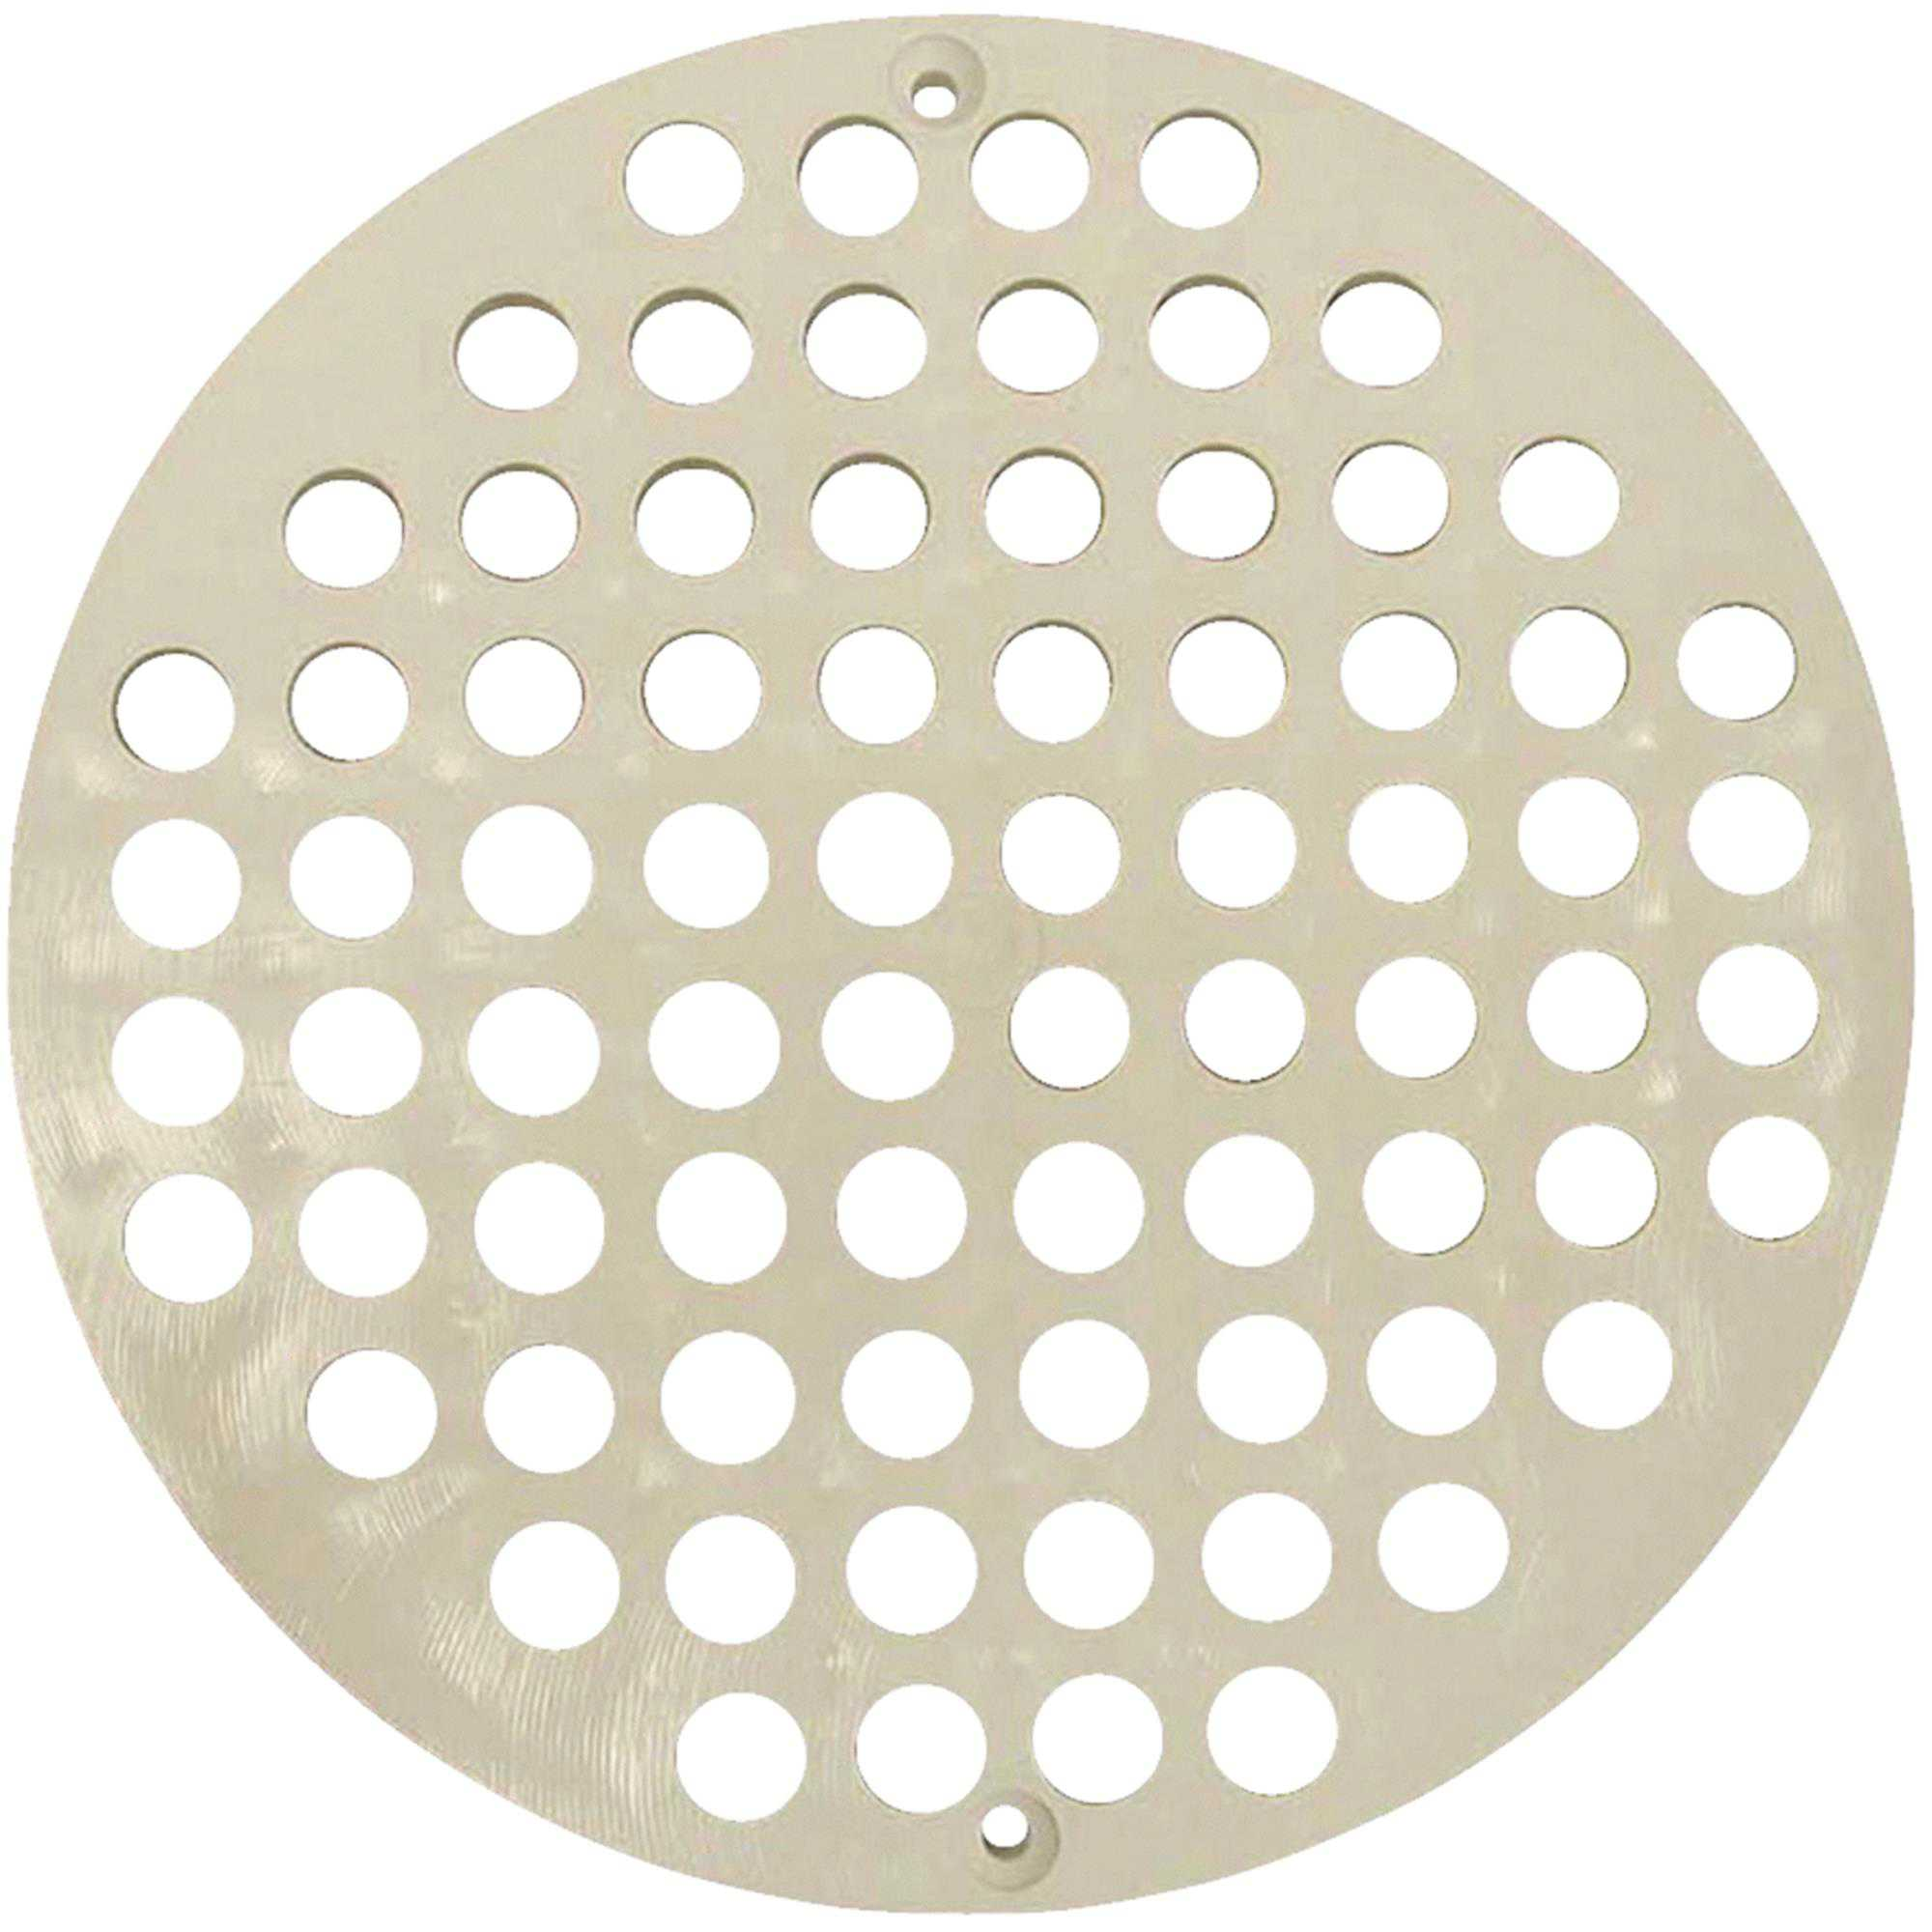 Jones Stephens PVC Grate Floor Strainer